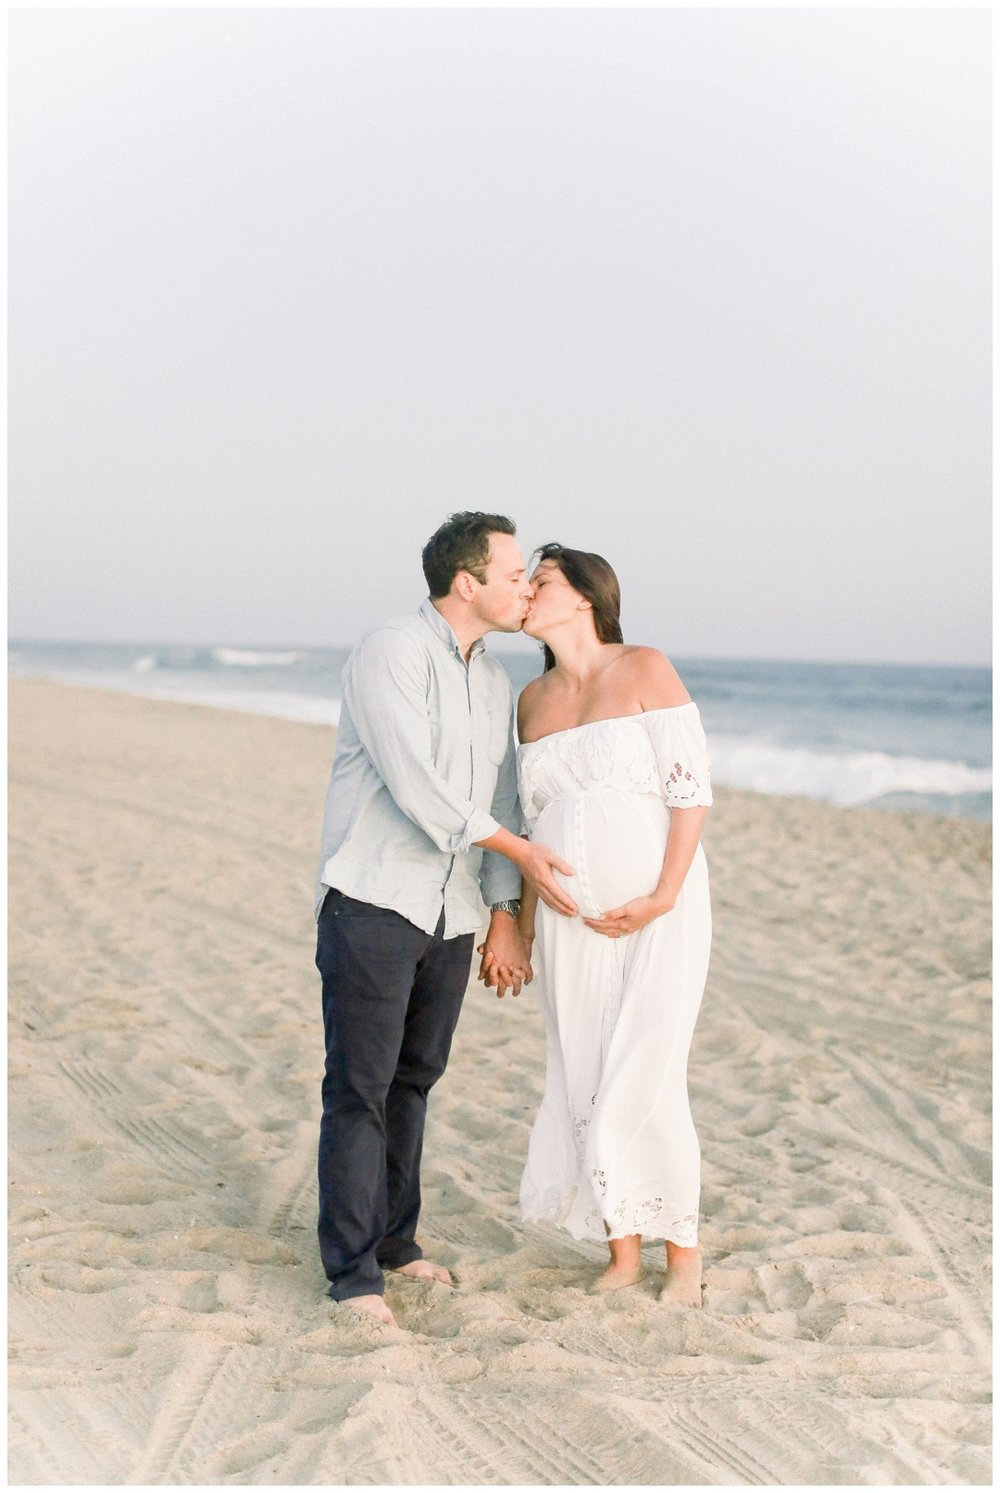 Newport_Beach_Maternity_Photographer_Newport_Beach_Newborn_Photography_Orange_County_Newborn_Photographer_Cori_Kleckner_Photography_Orange_County_in-home_Photography__2153.jpg